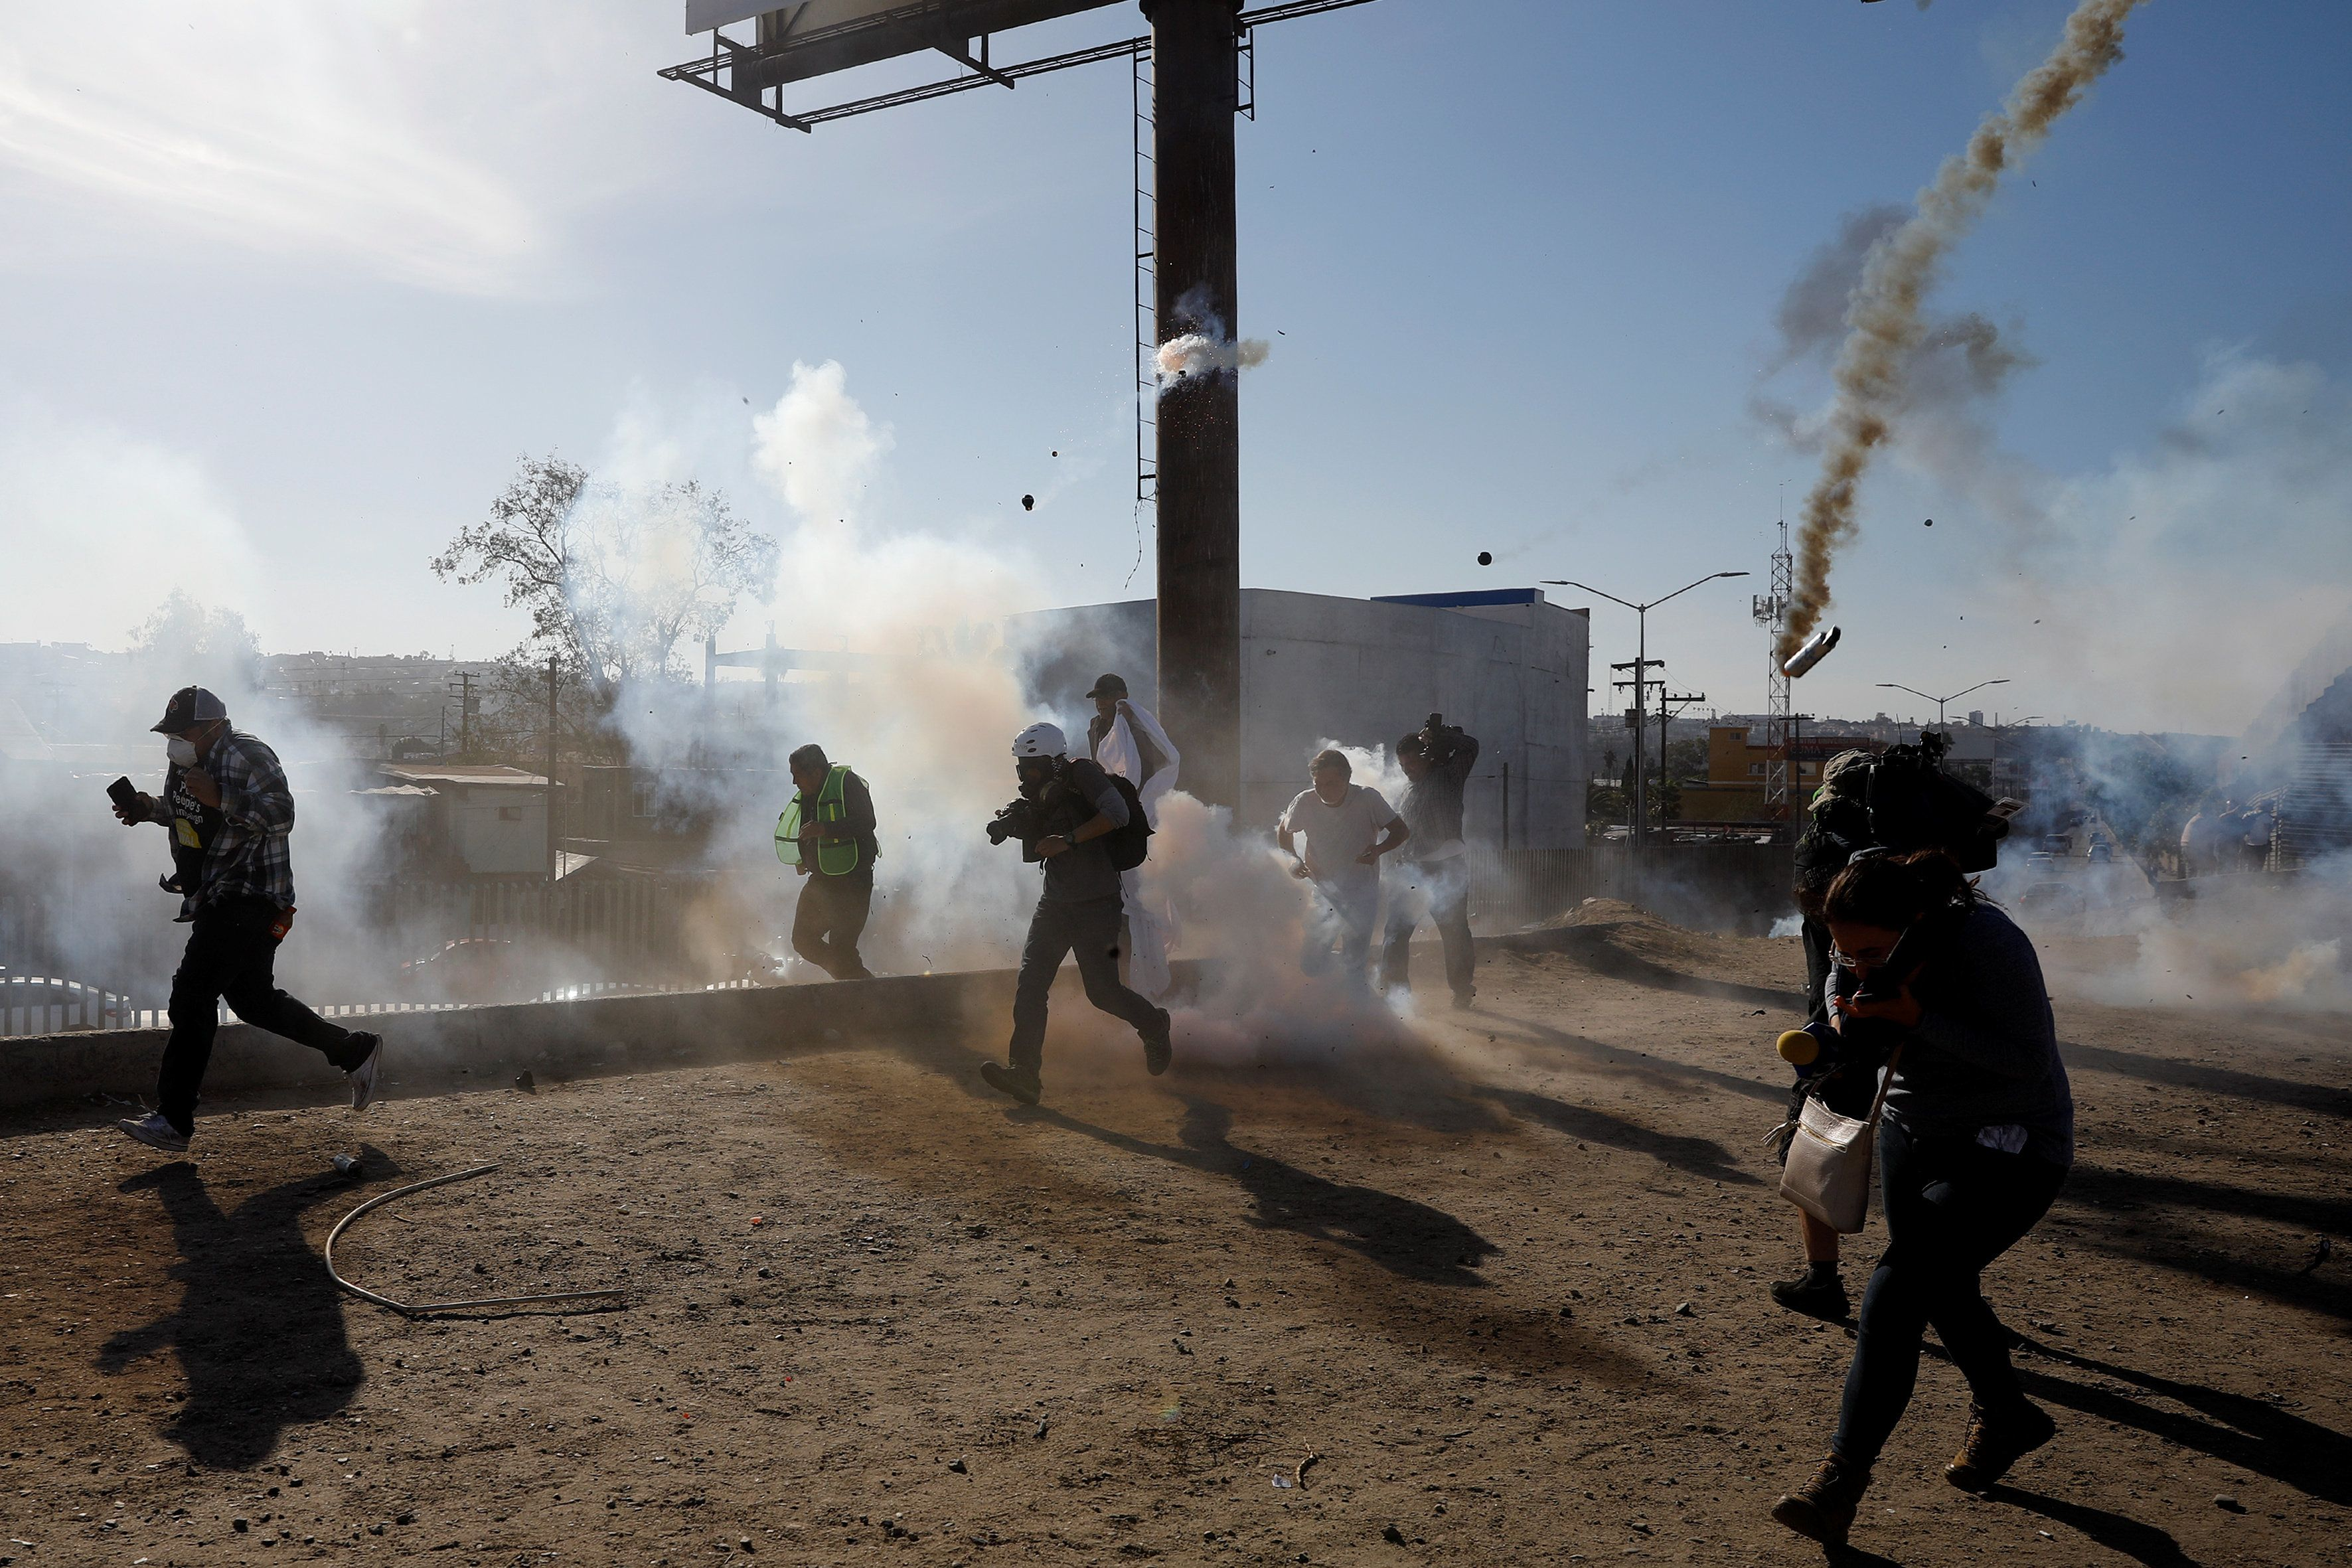 Migrants, part of a caravan of thousands traveling from Central America en route to the United States, and journalists flee t